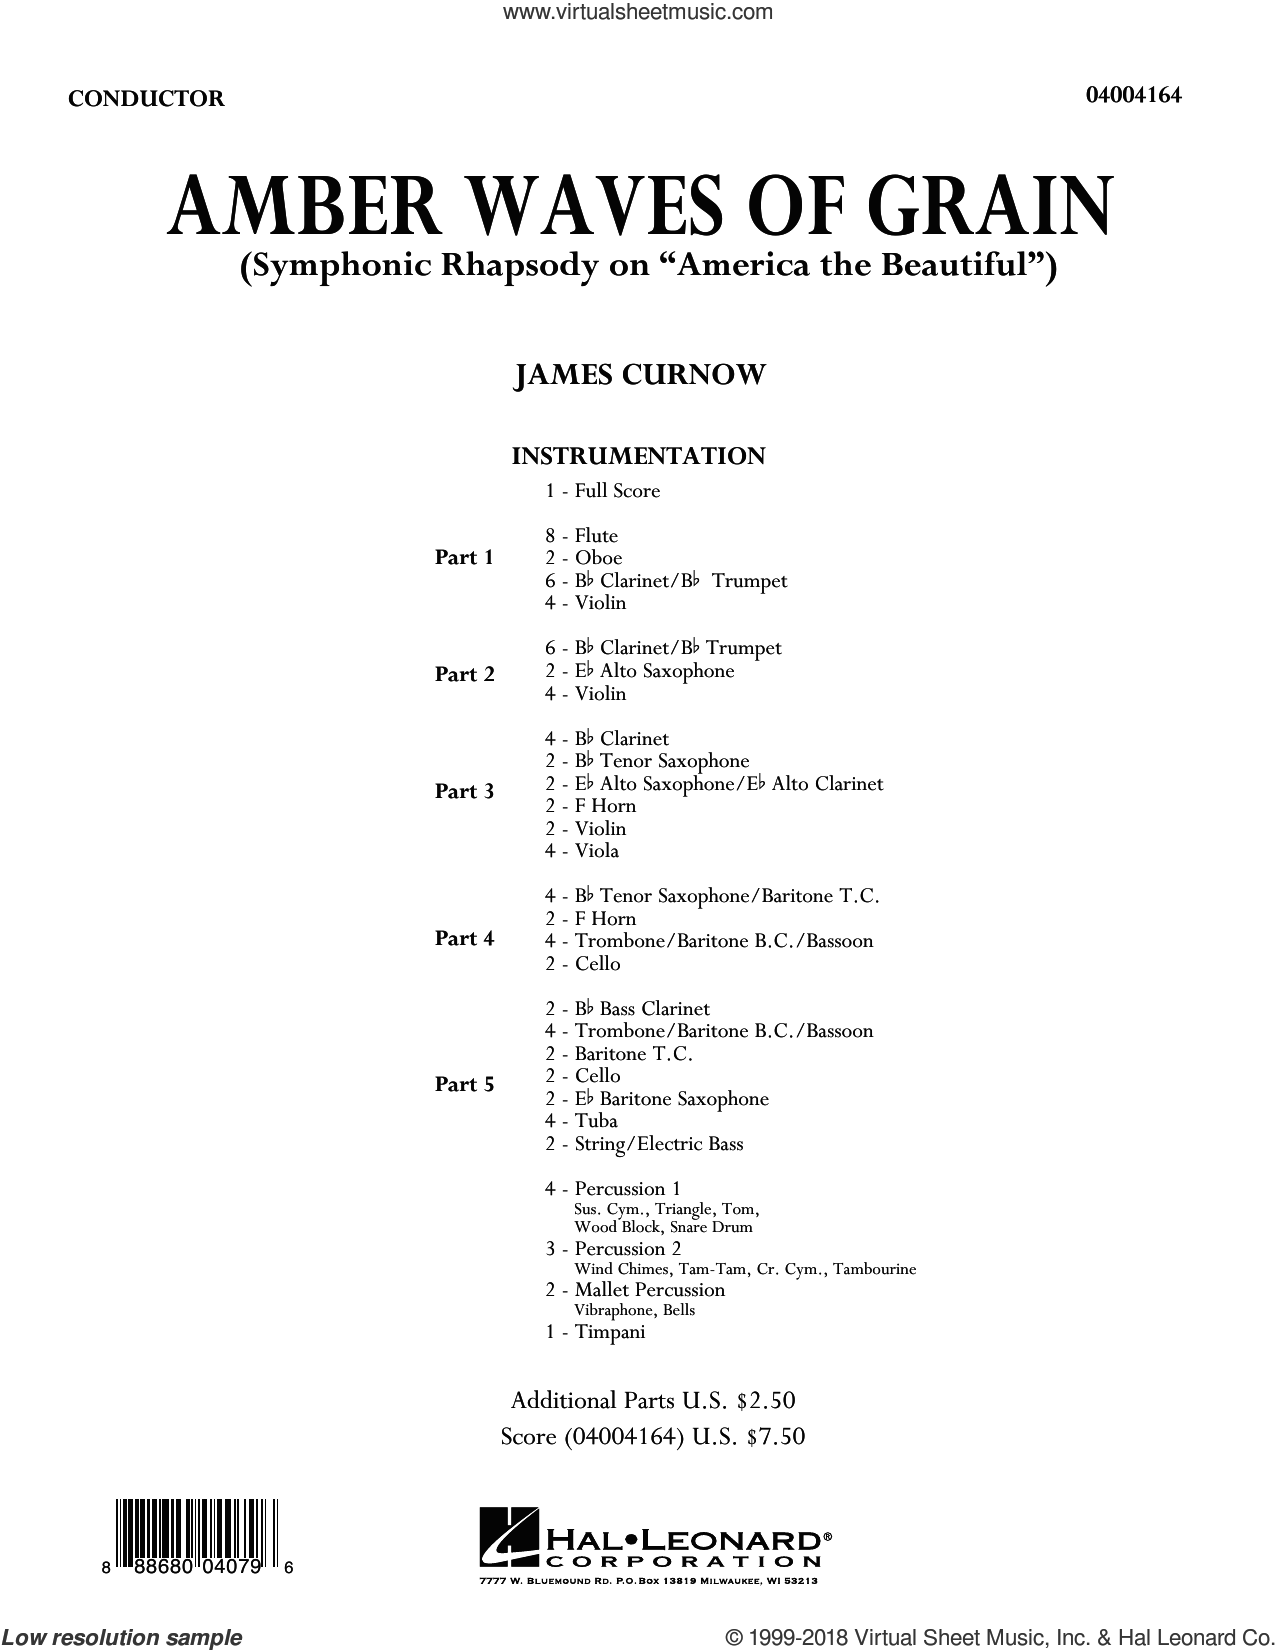 Amber Waves of Grain (COMPLETE) sheet music for concert band by James Curnow, intermediate skill level